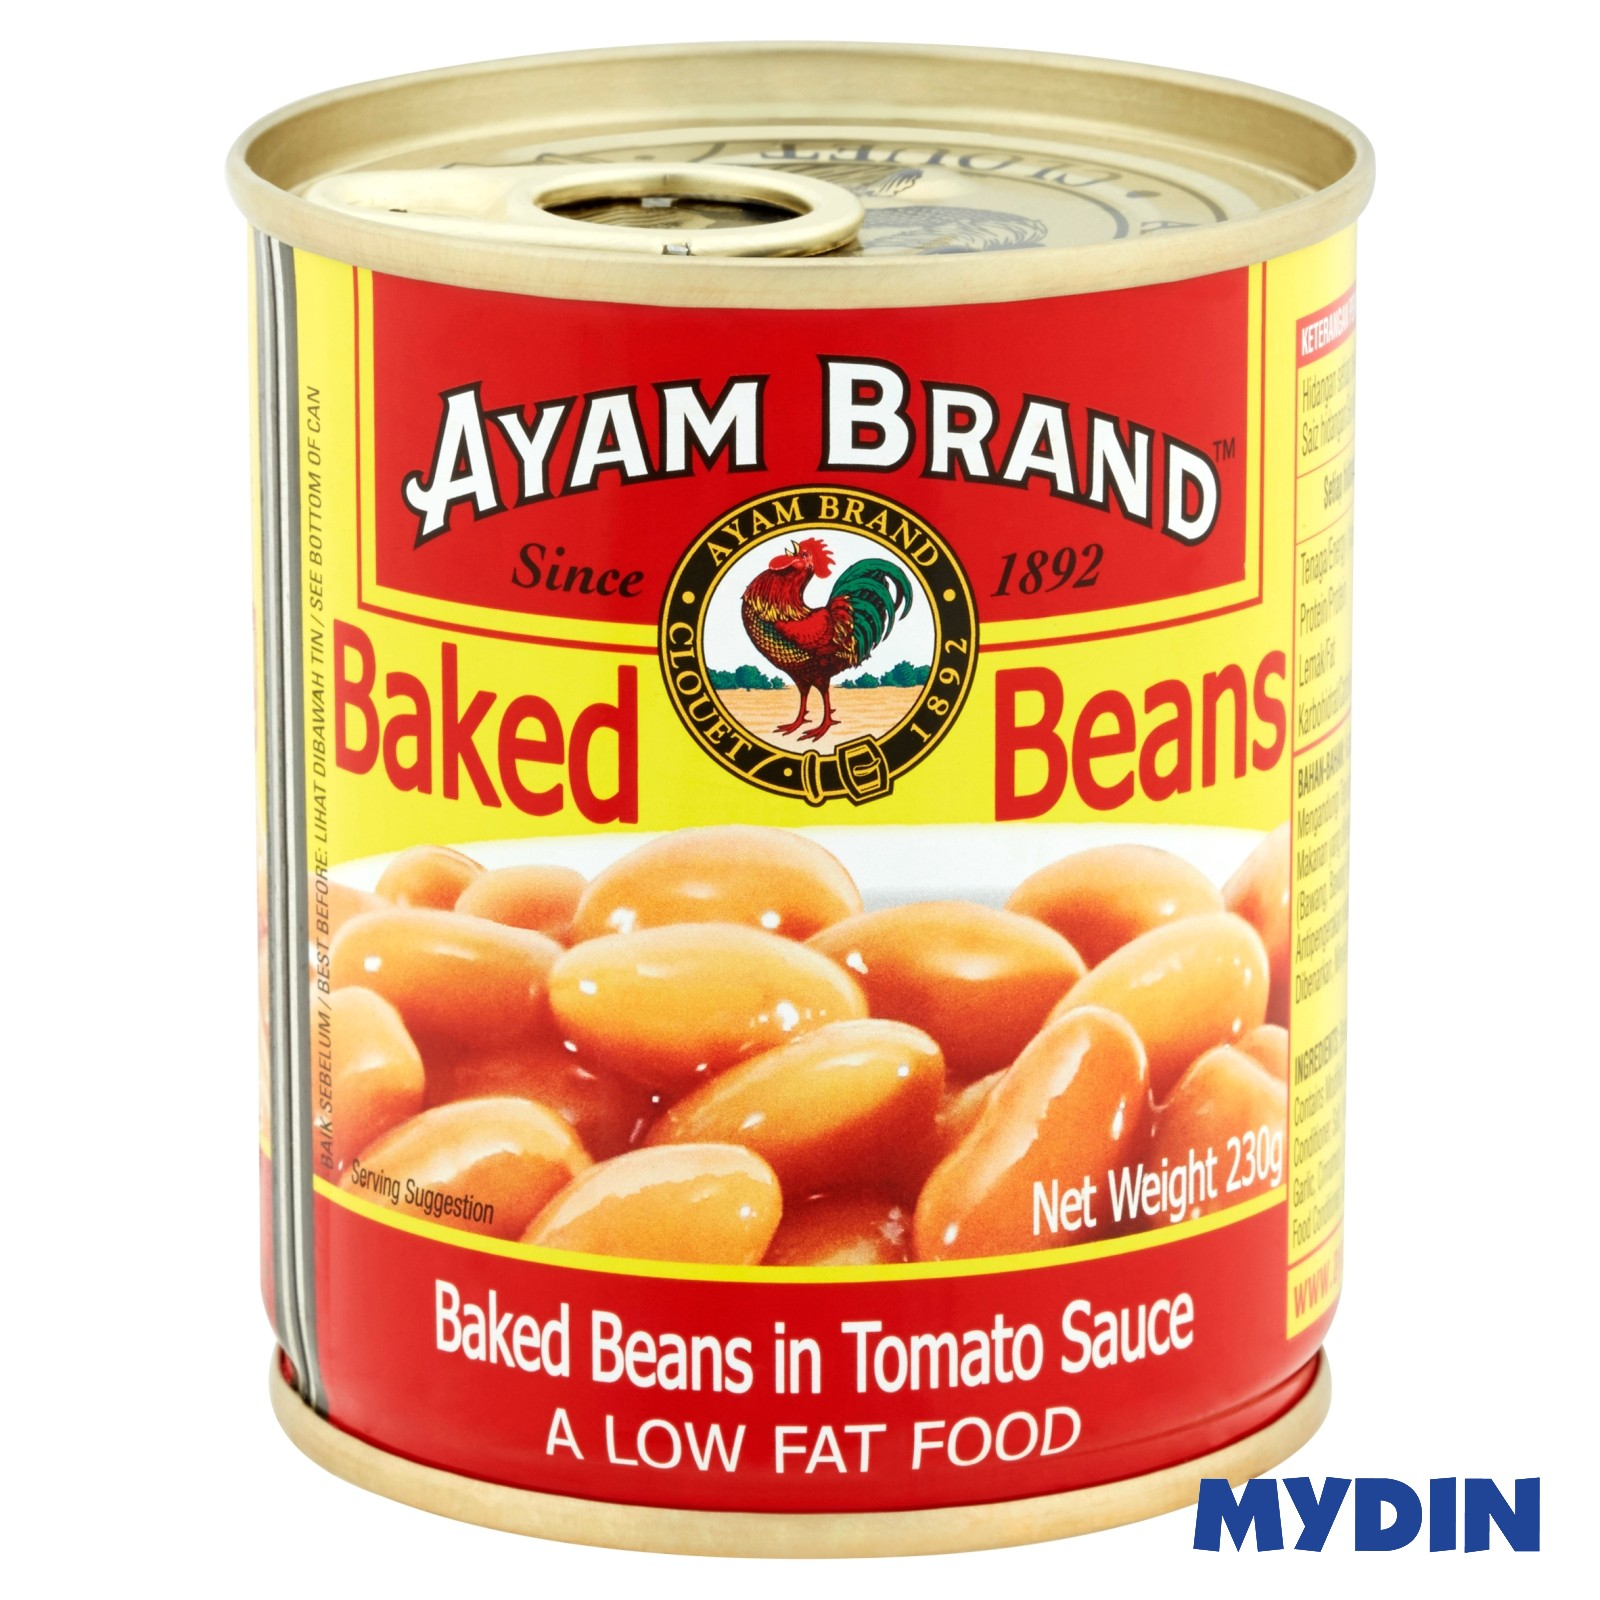 Ayam Brand Baked Beans in Tomato Sauce 230g